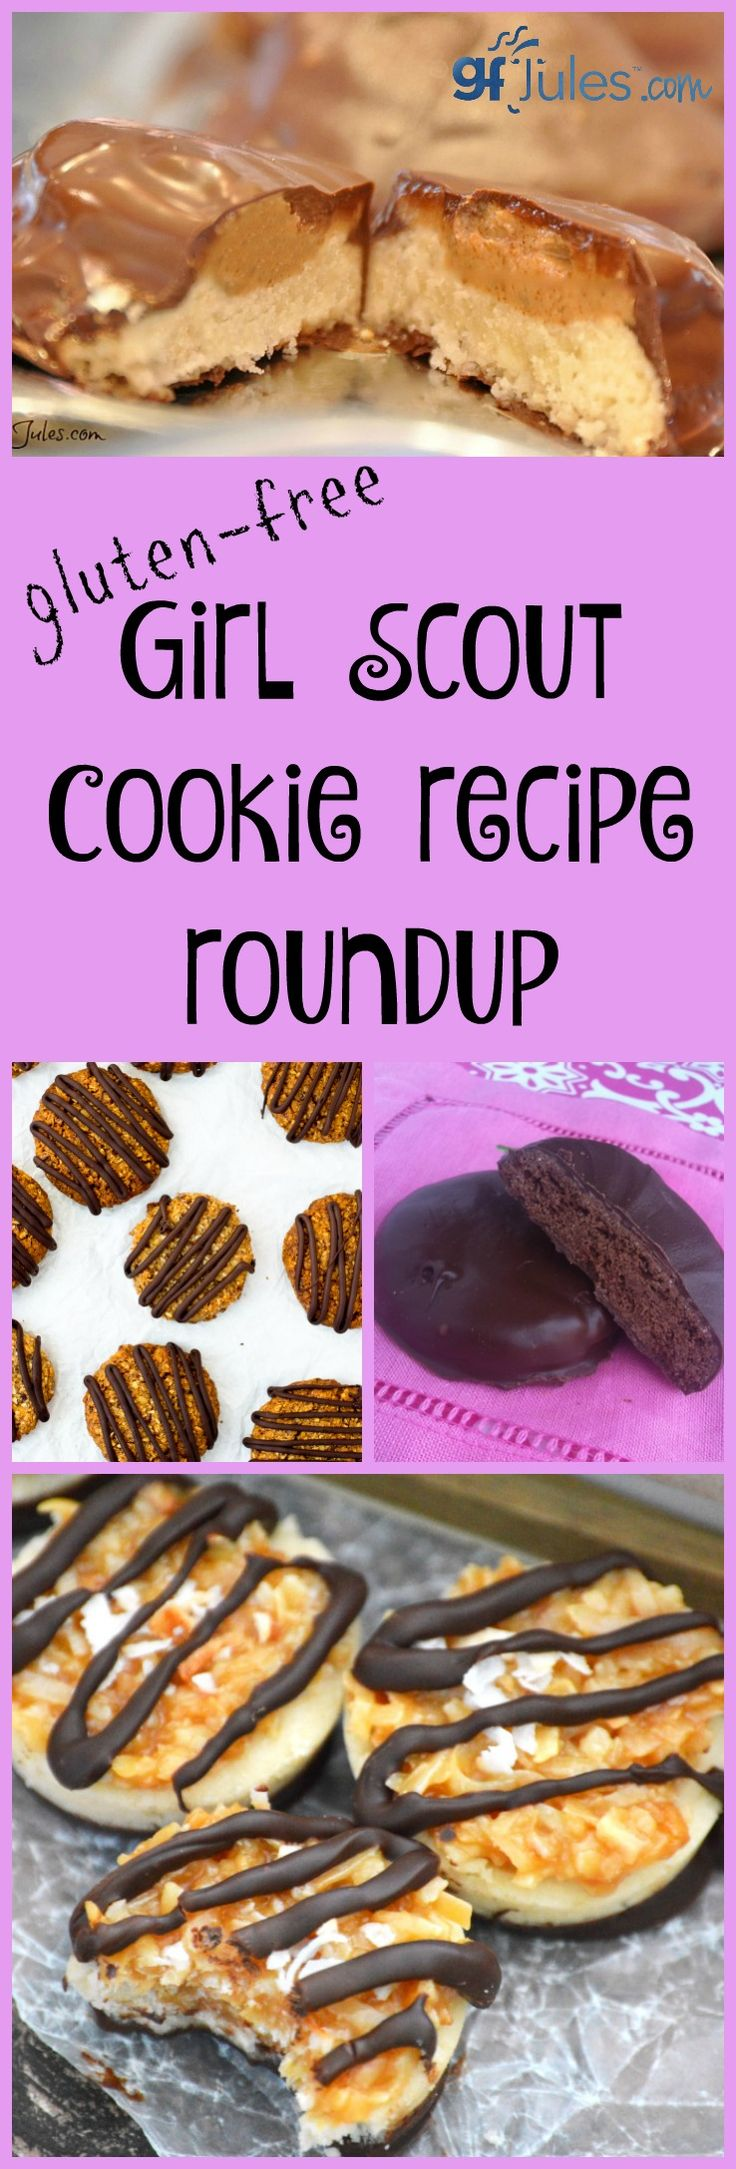 Gluten free girl scout cookie recipe roundup. Everything from Tag-a-Longs to Samoas, Thin Mints to Do-si-Dos -- make them yourself, gluten free, dairy free, vegan, paloe ... tons of options! - gfJules